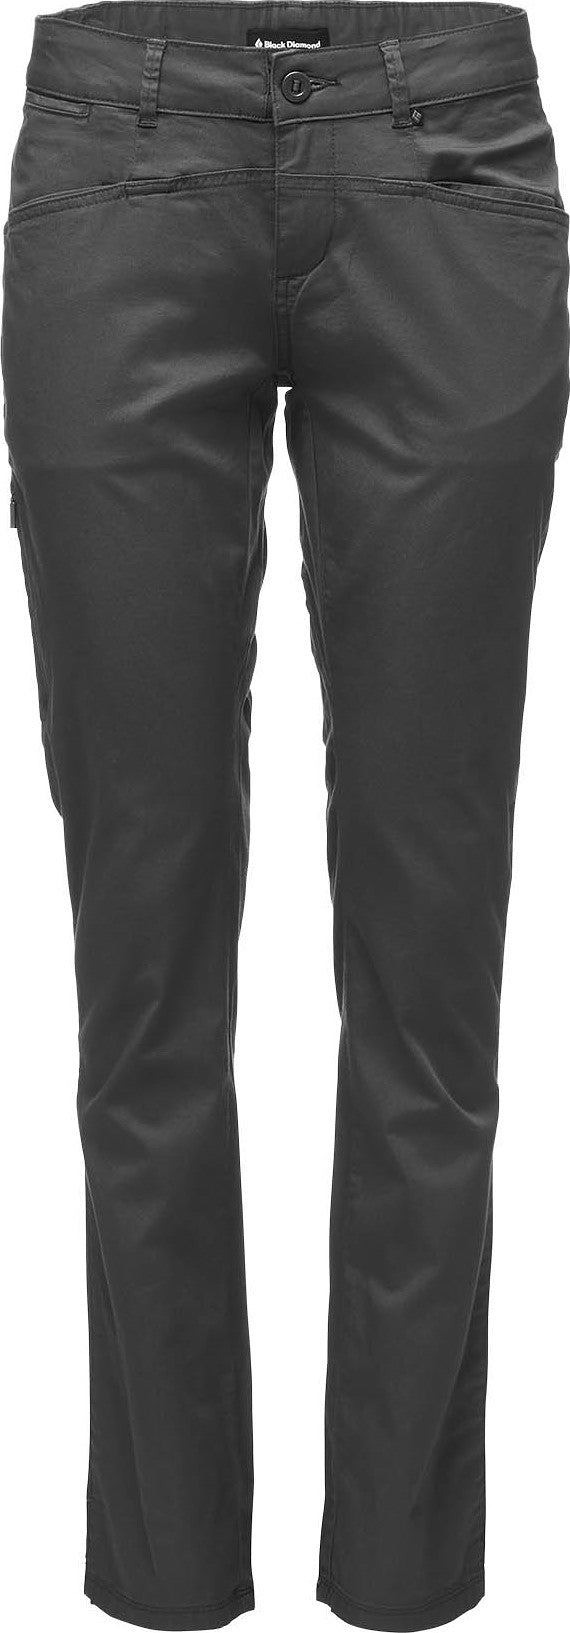 Black Diamond Radha Pants - Women's